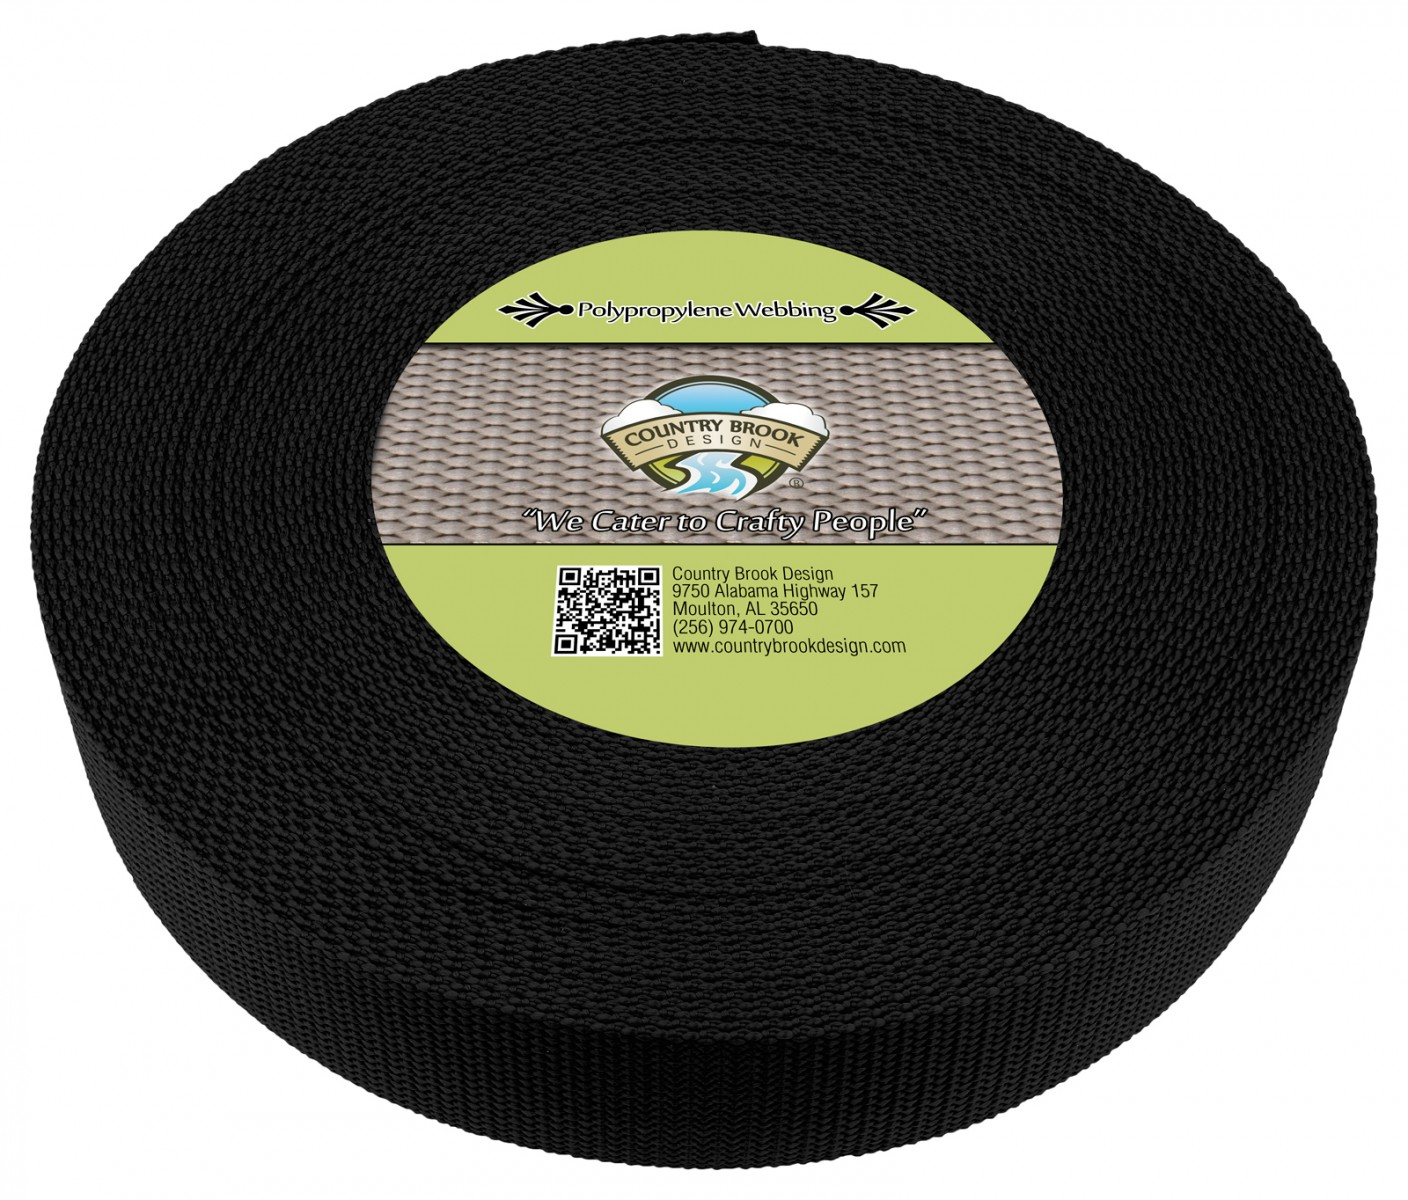 50 Yards Country Brook Design® 1 1//2 Inch White Polypro Webbing